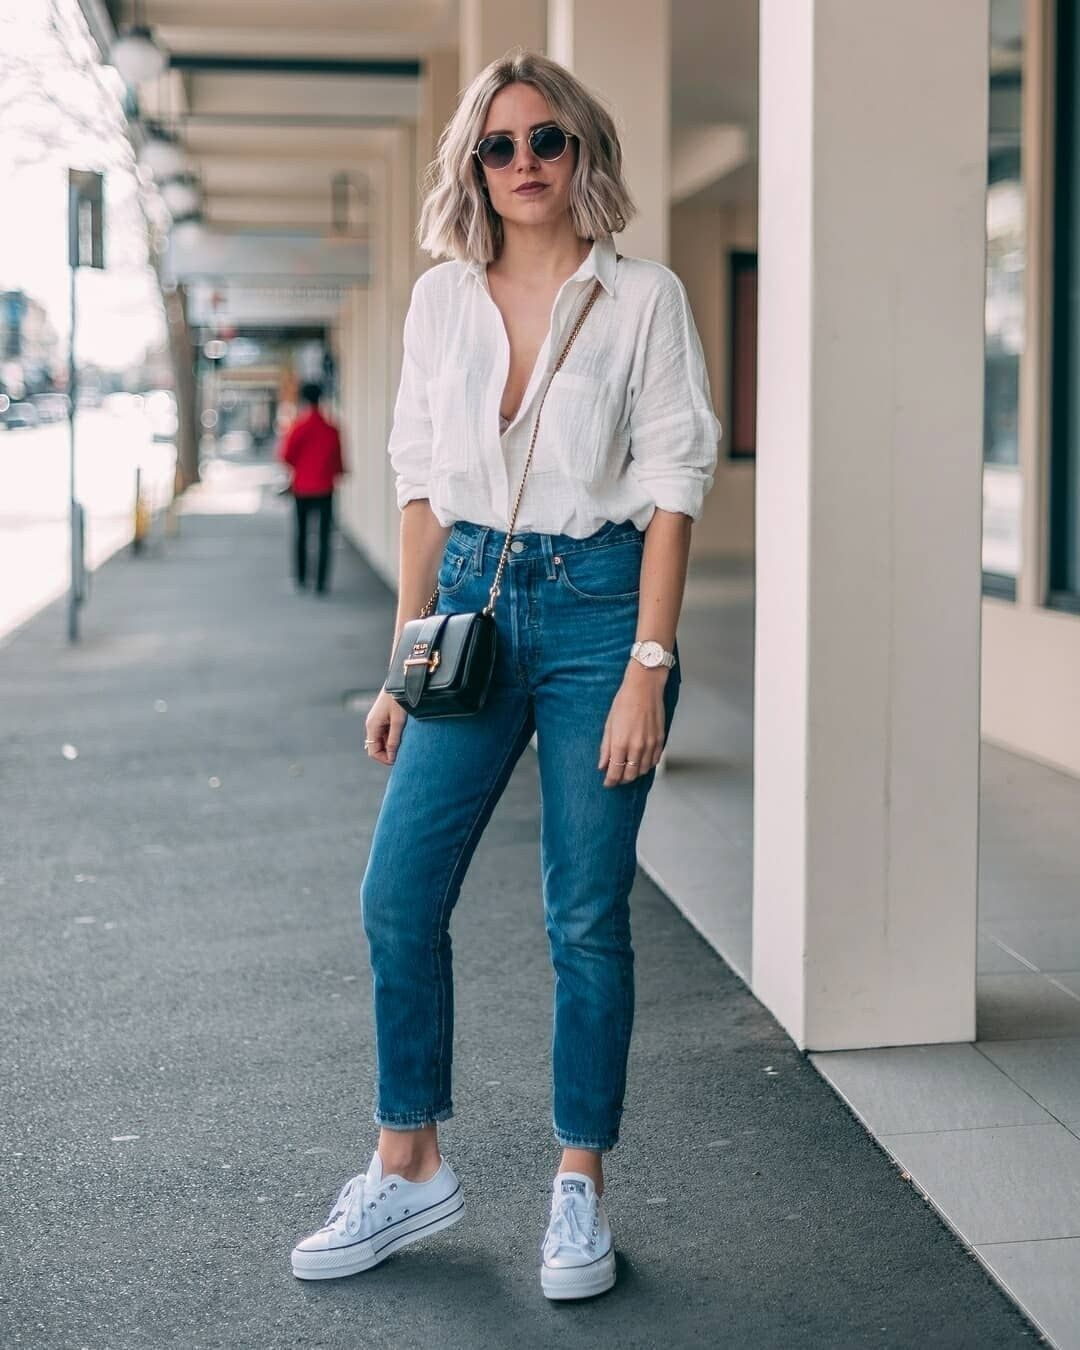 11 Casual Outfits With Denim Jeans for Spring 11  Outfit